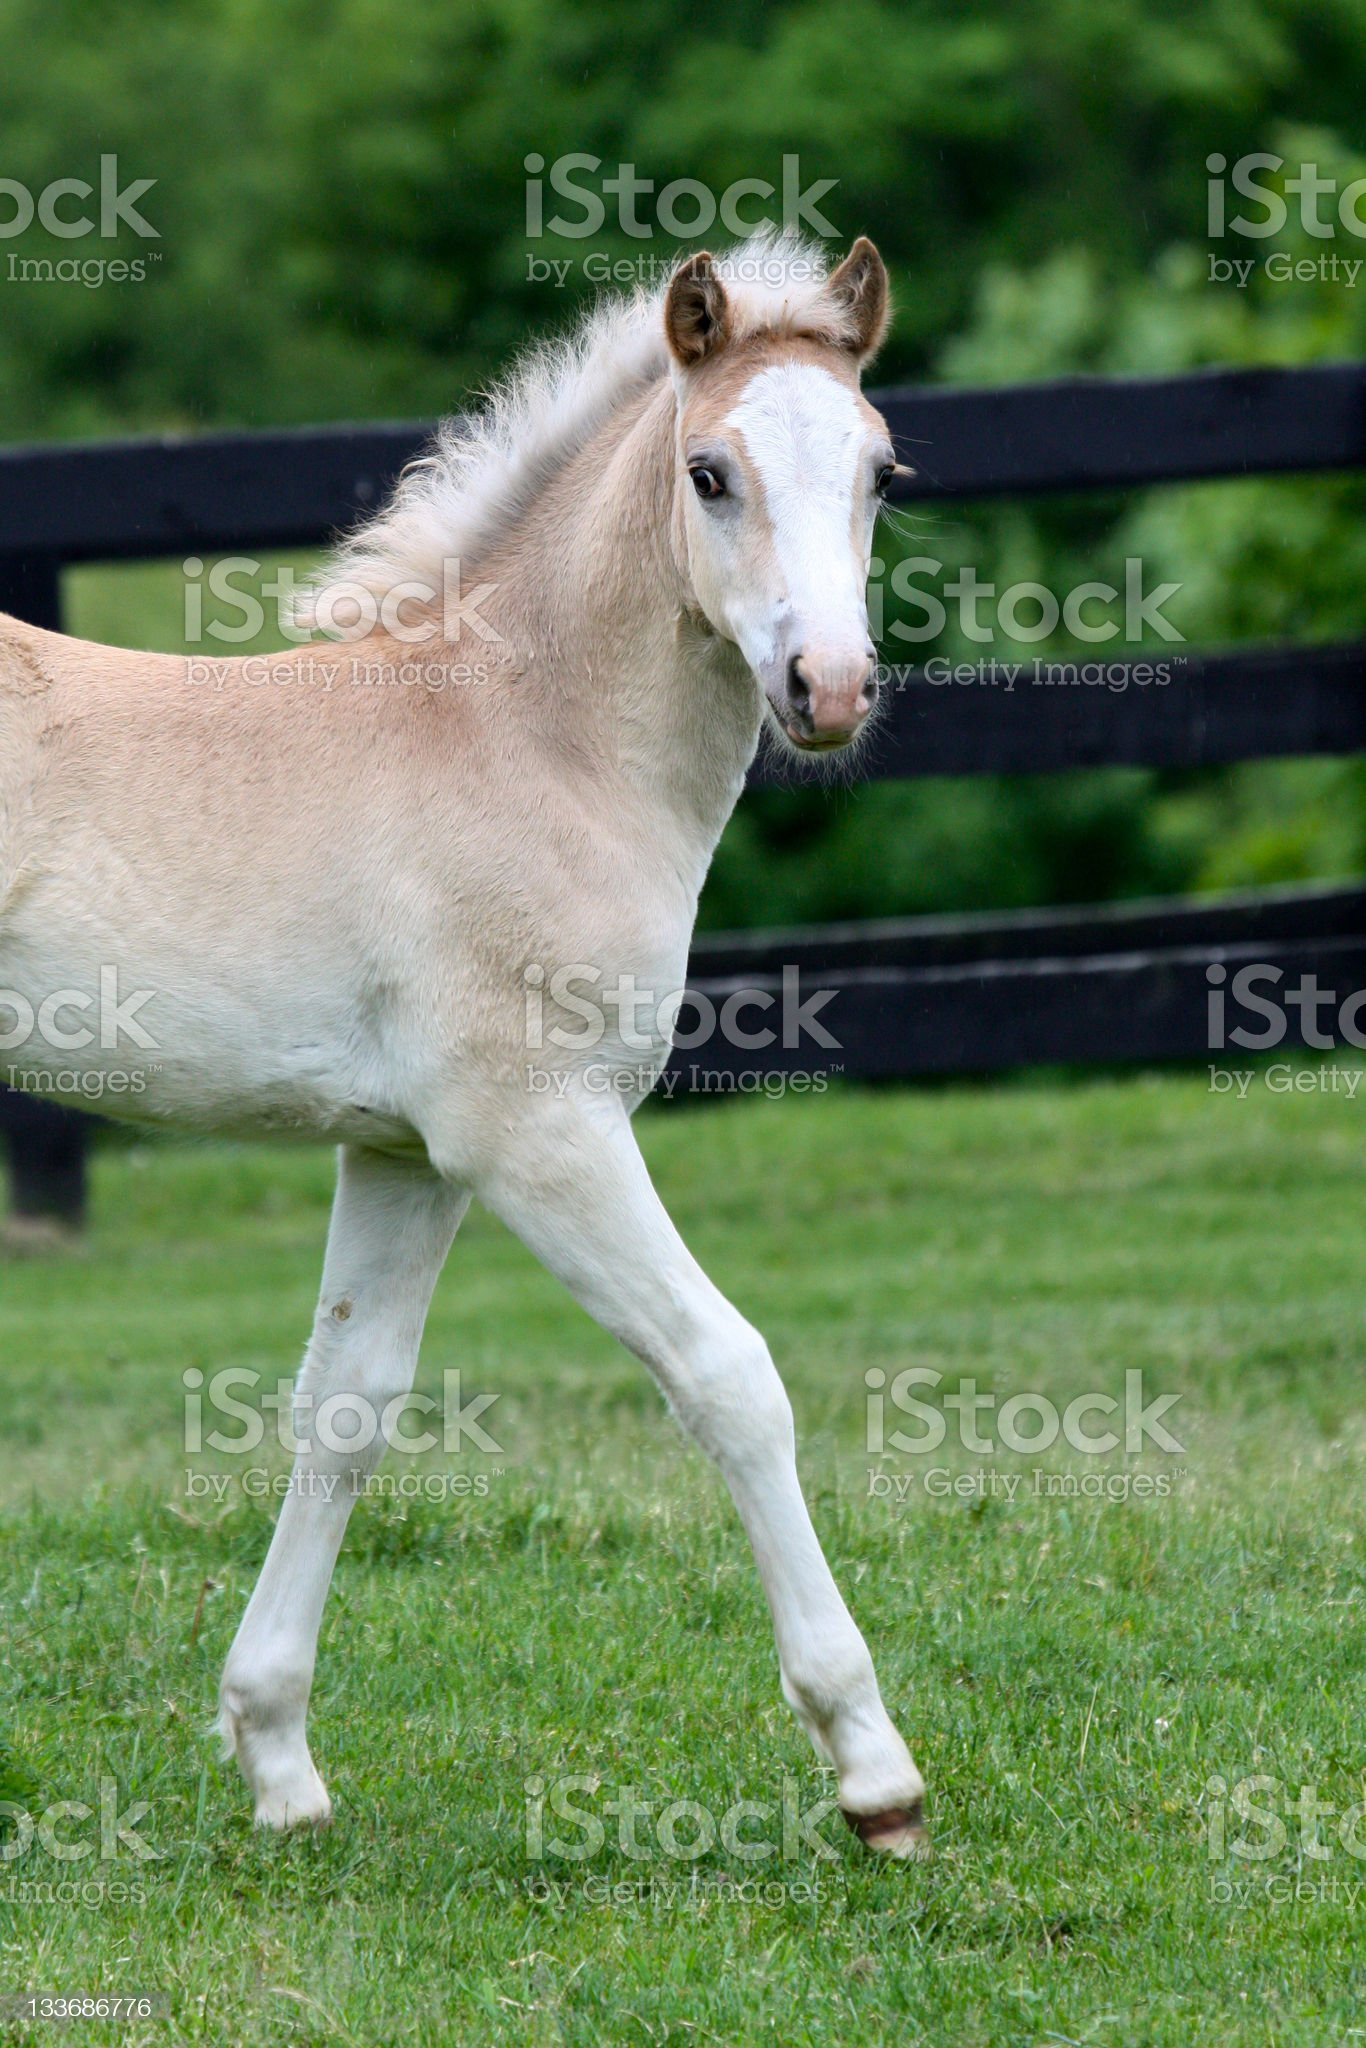 baby blond horse stepping out royalty-free stock photo